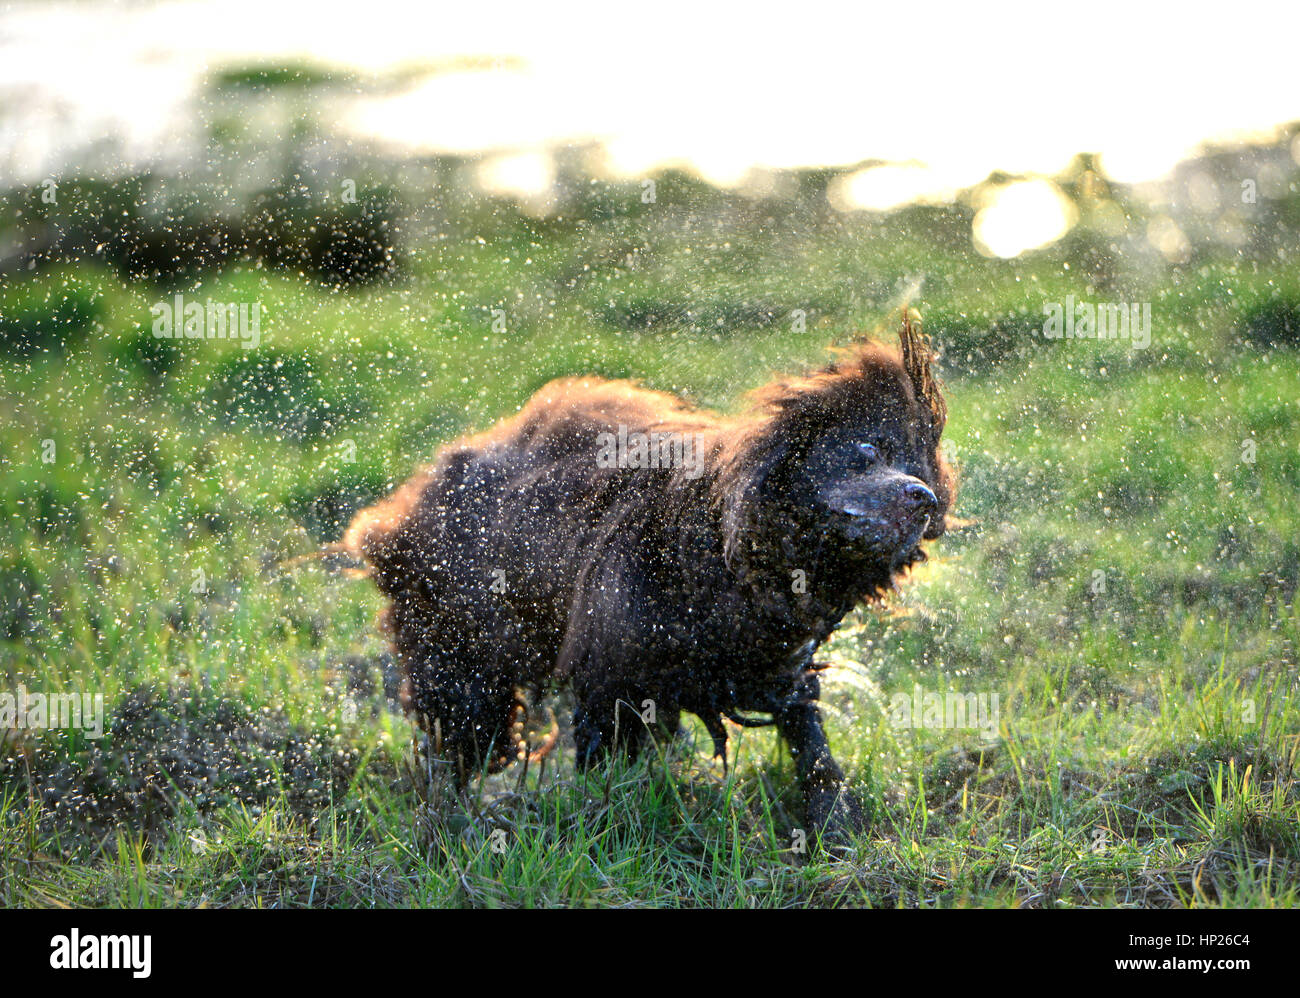 Brown cocker spaniel shaking off water in the sun - Stock Image